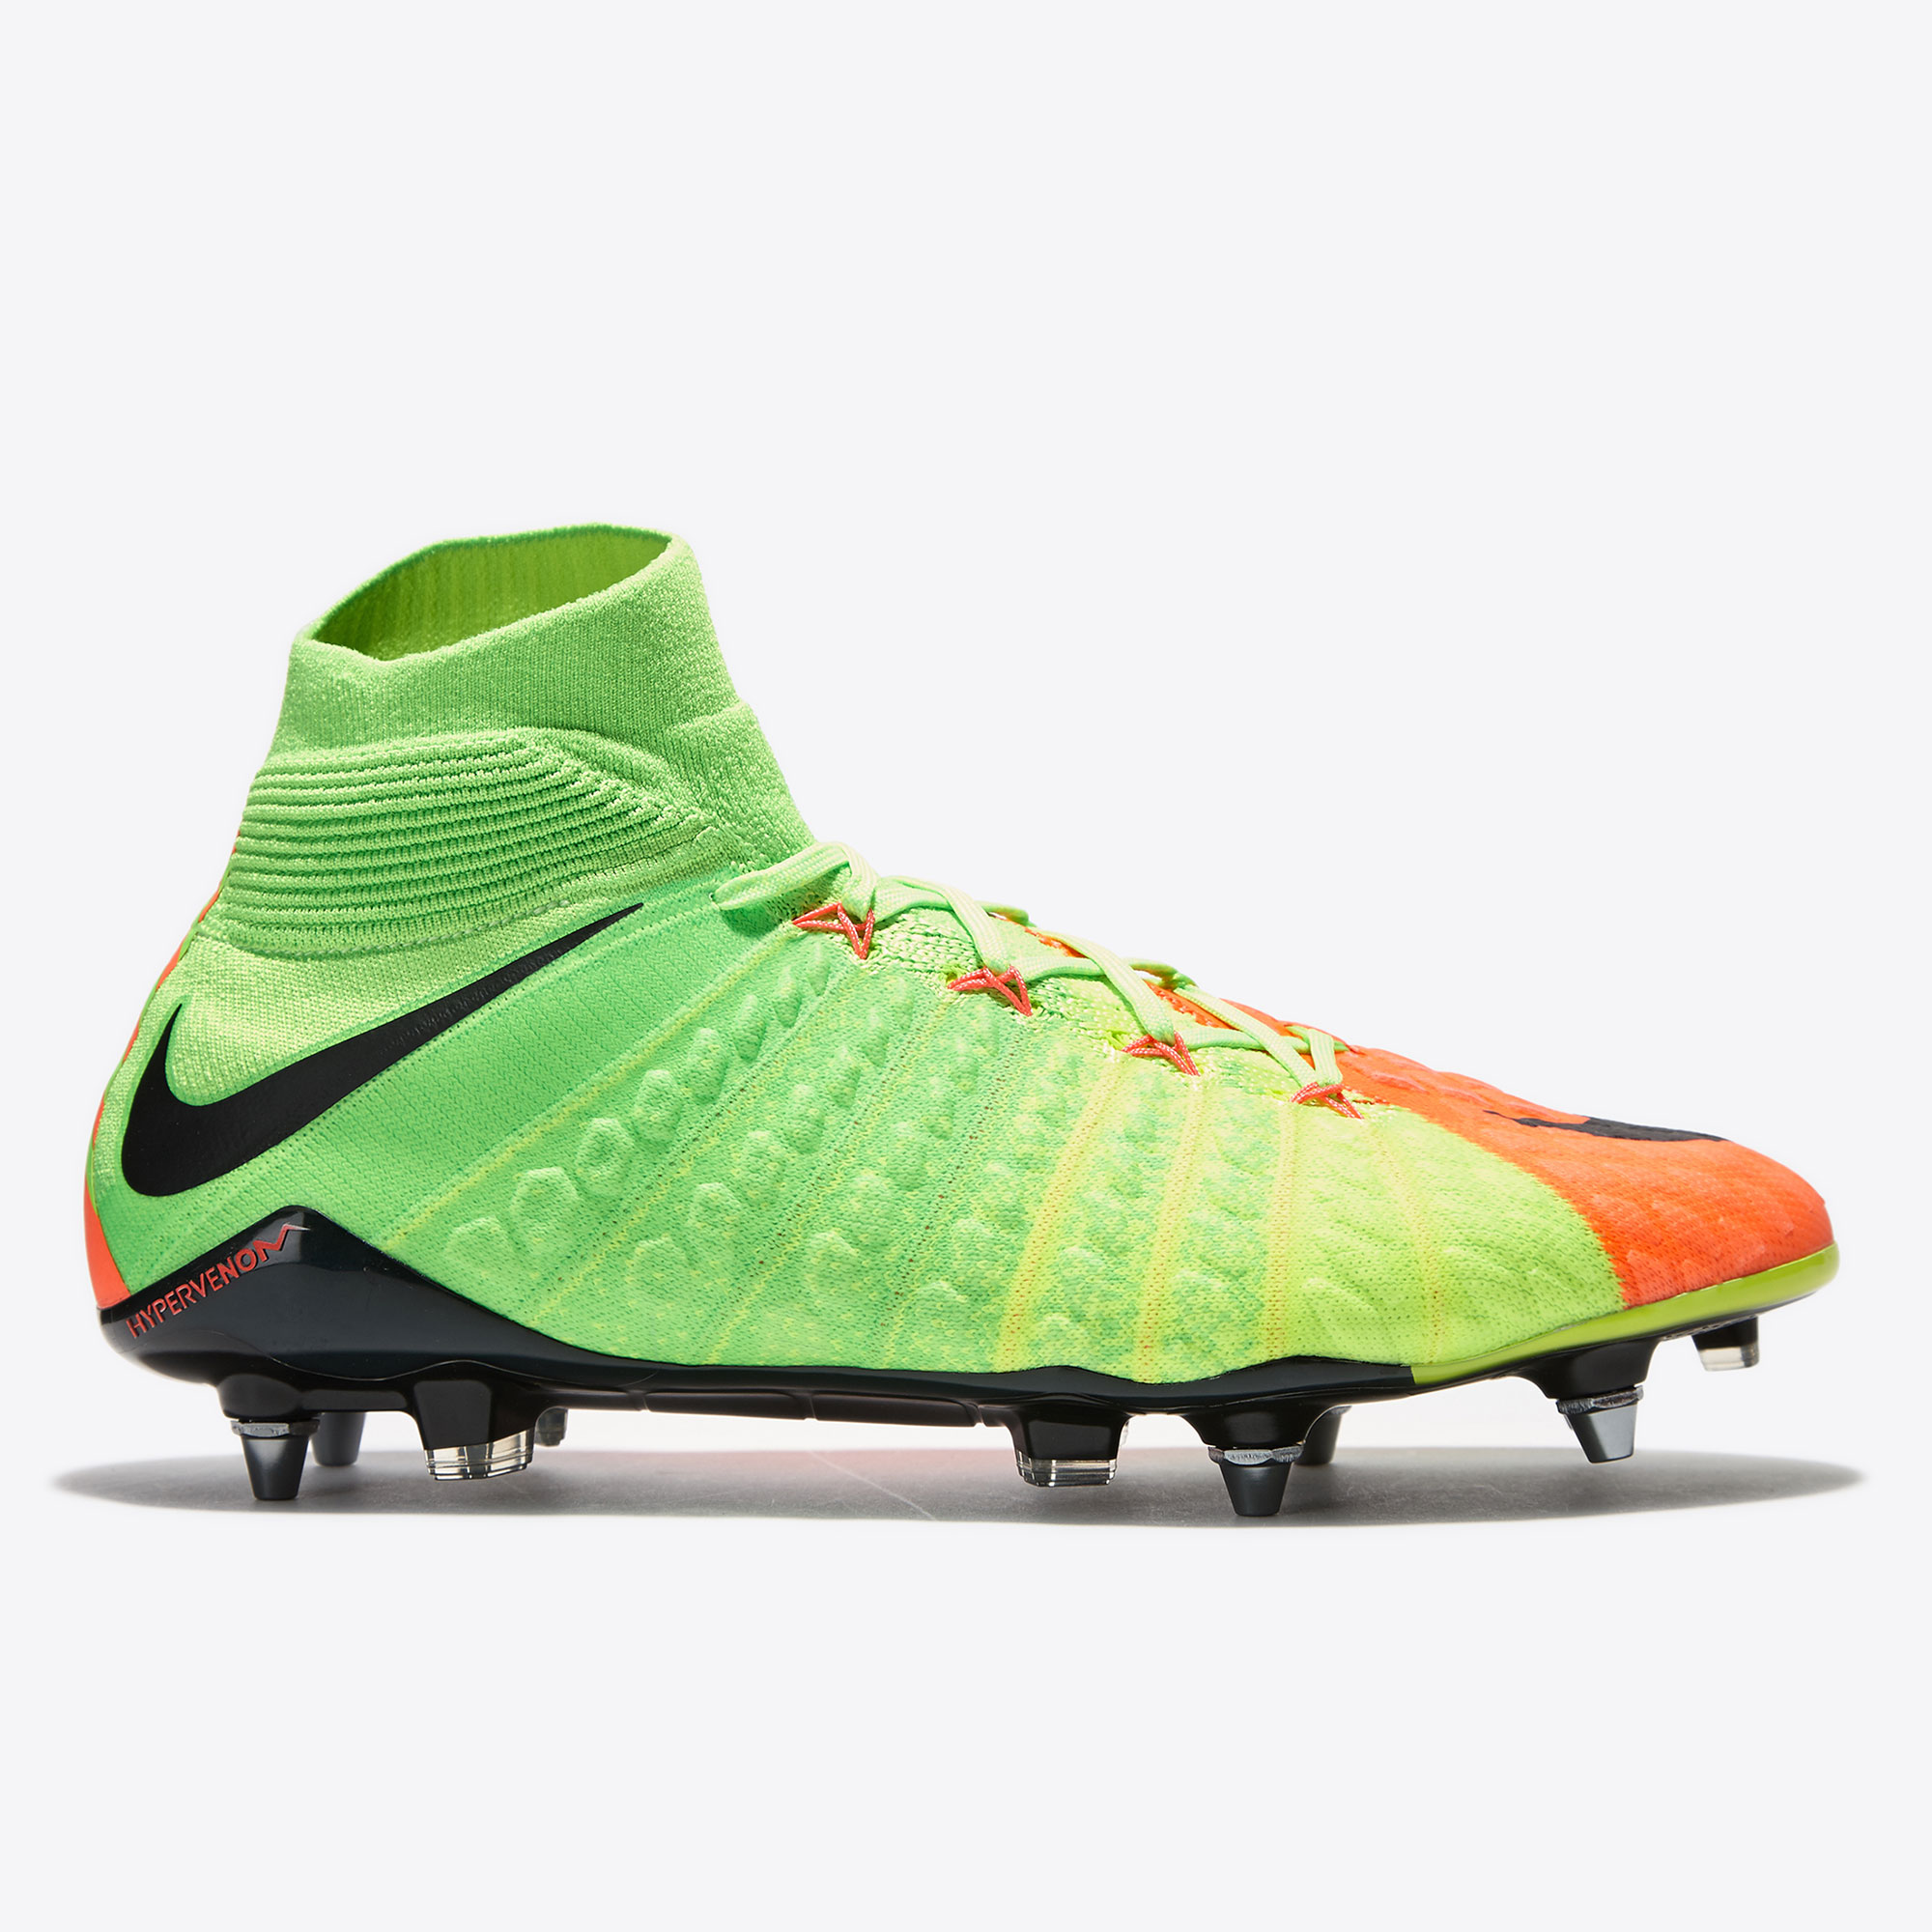 Nike Hypervenom Phantom III Soft Ground Pro Football Boots - Electric